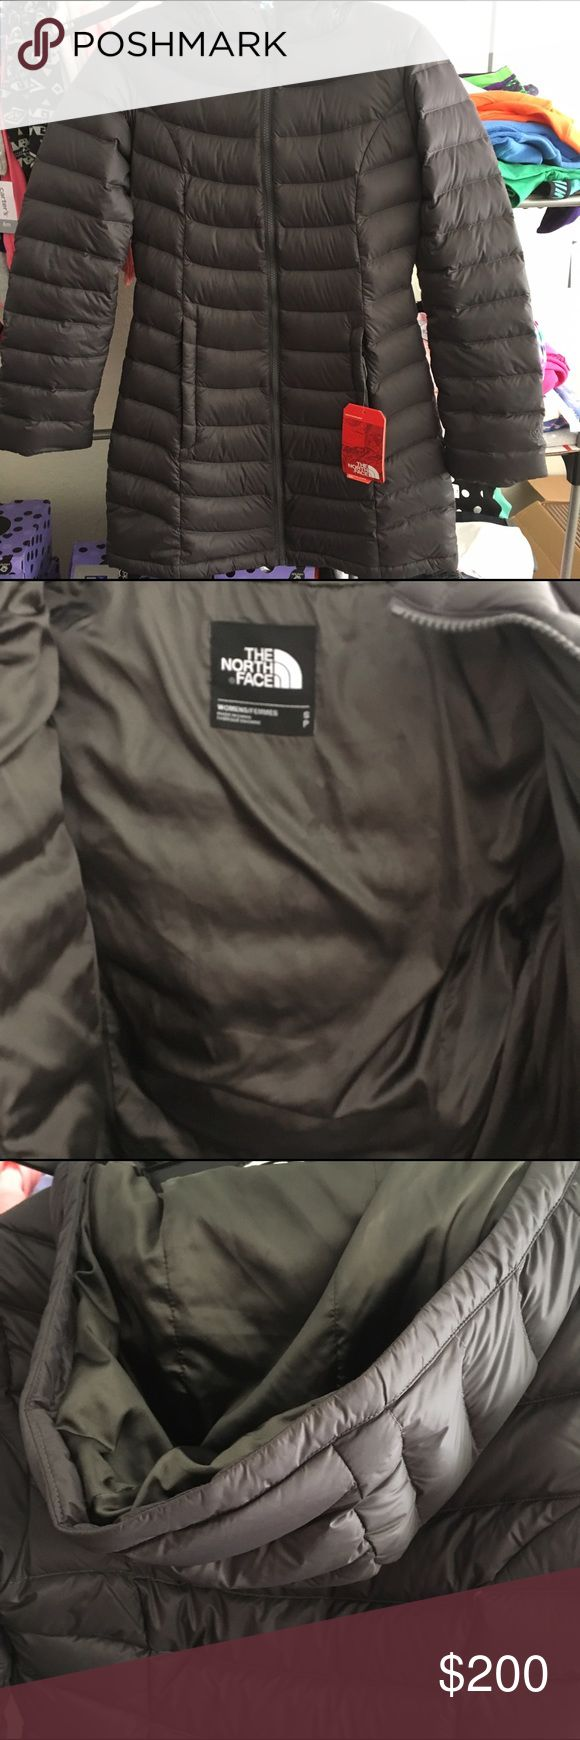 The North Face Winter Jacket Hooded NWT Size Small The North Face Winter Jacket Hooded NWT Size Small The North Face Jackets & Coats Puffers